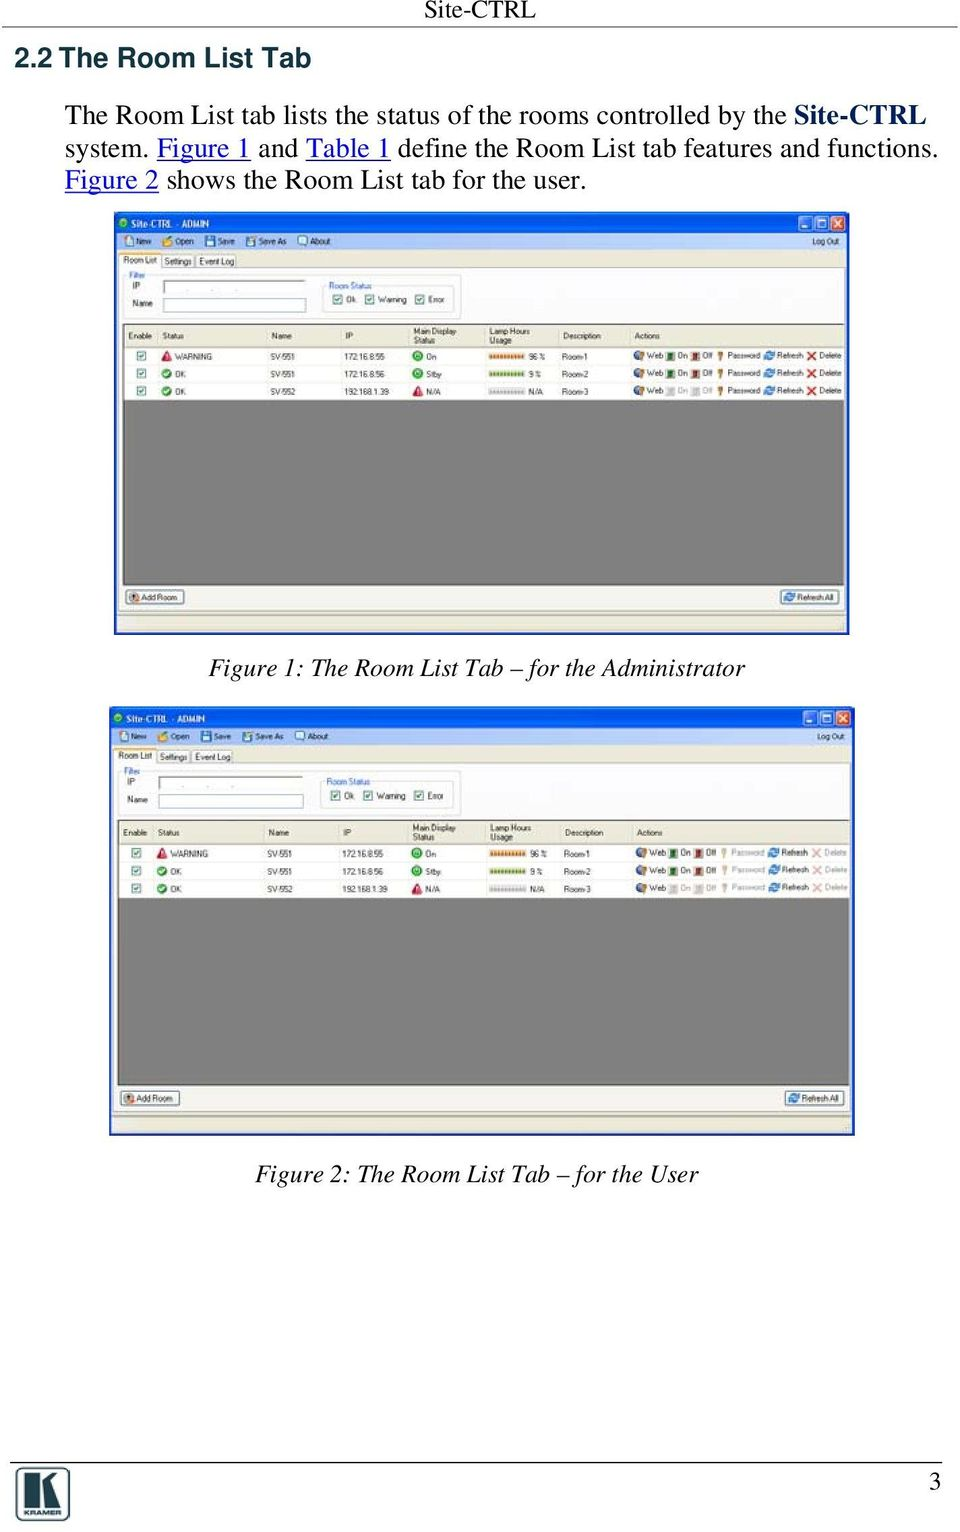 Figure 1 and Table 1 define the Room List tab features and functions.